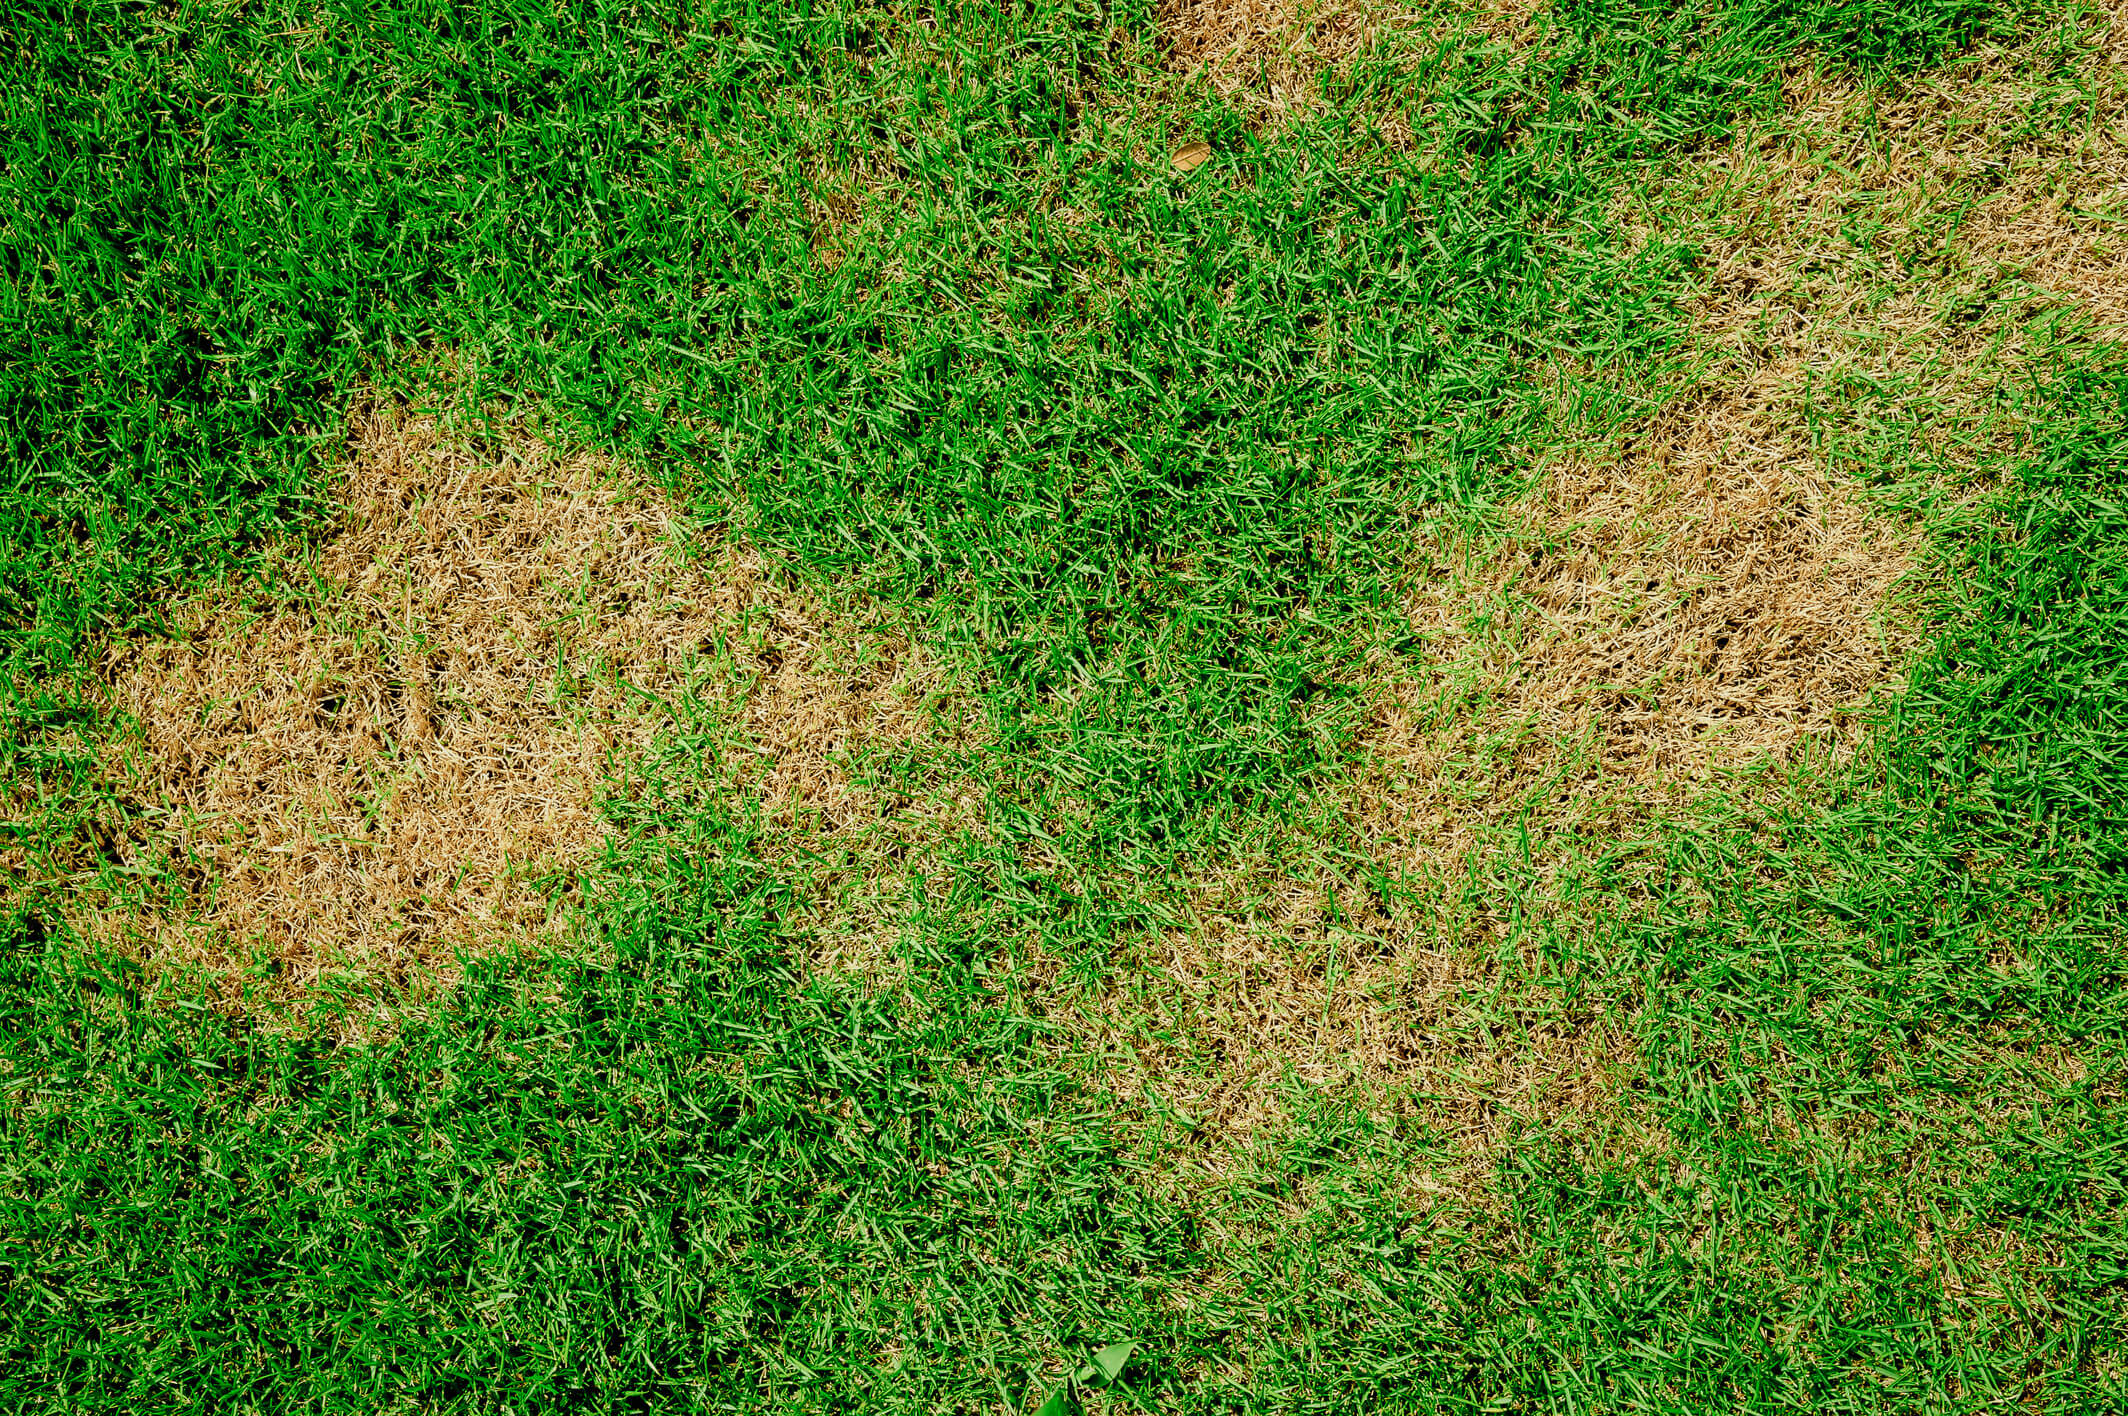 Dry brown patches on grass.